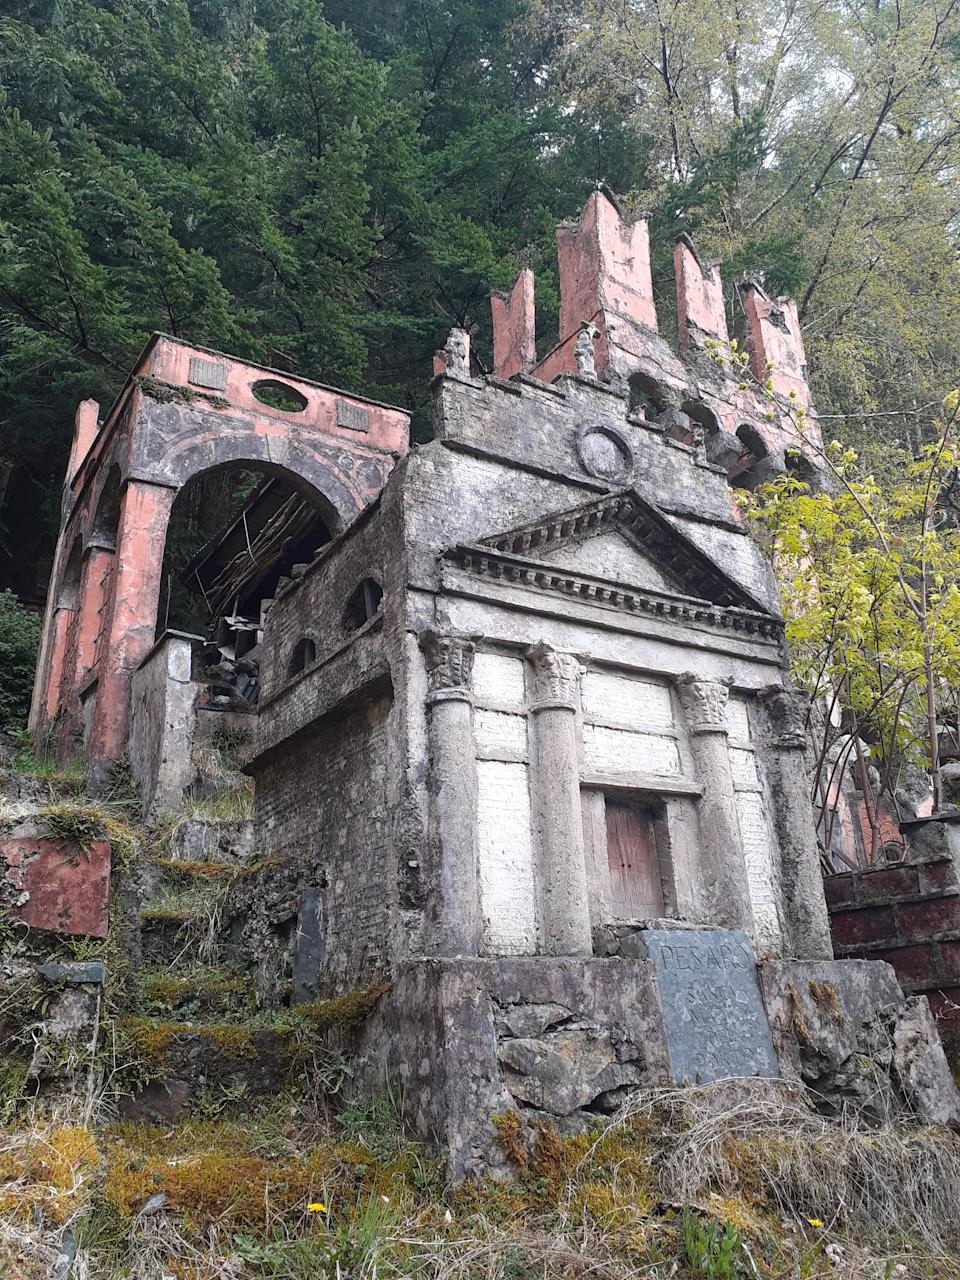 Ruined temples are concealed in the undergrowth